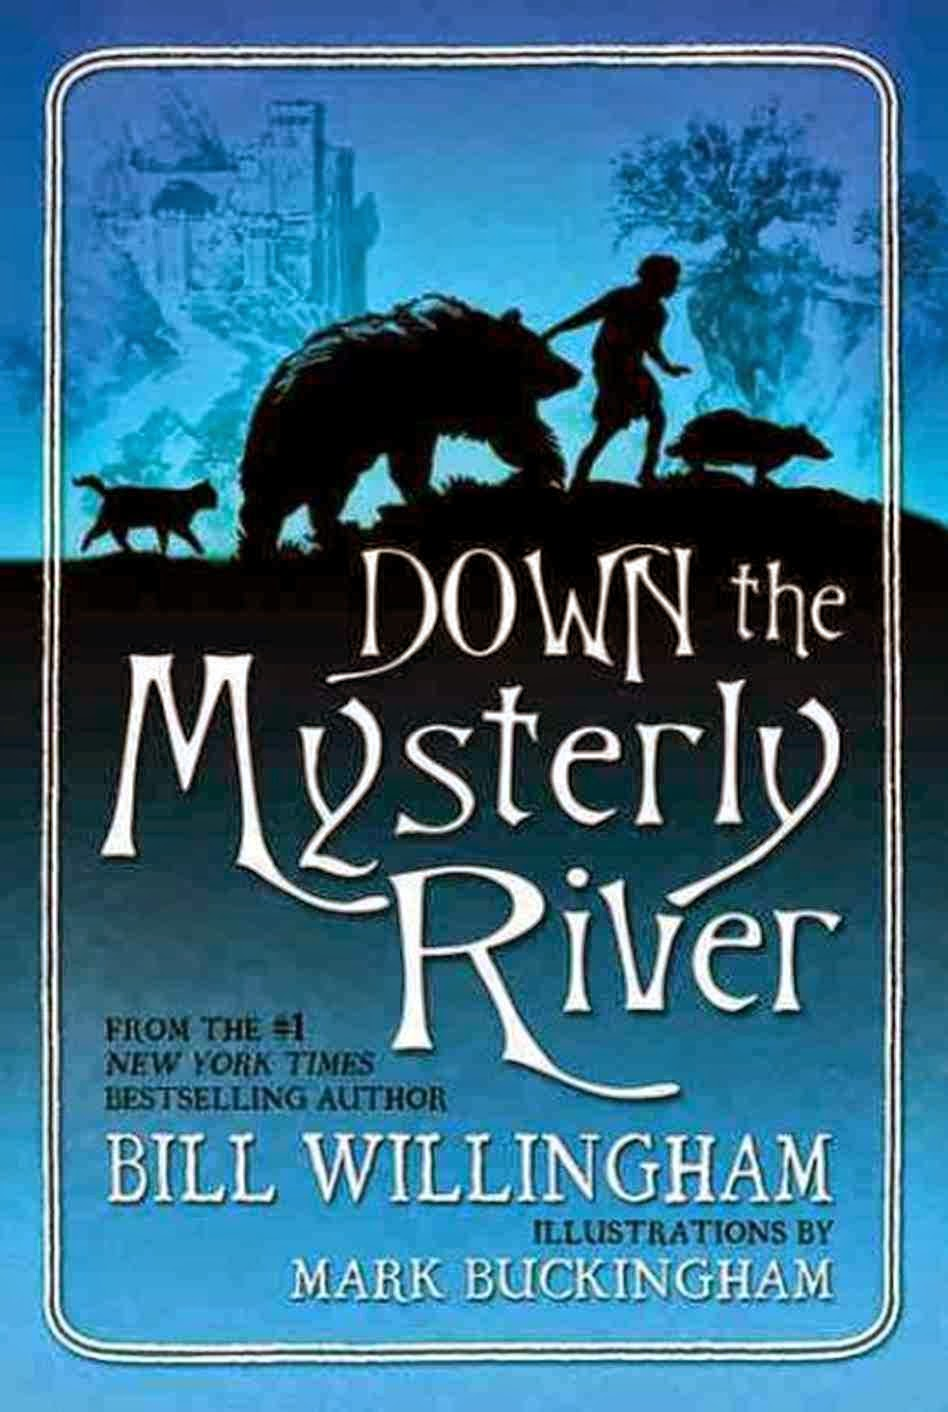 Cover of Down the Mysterly River